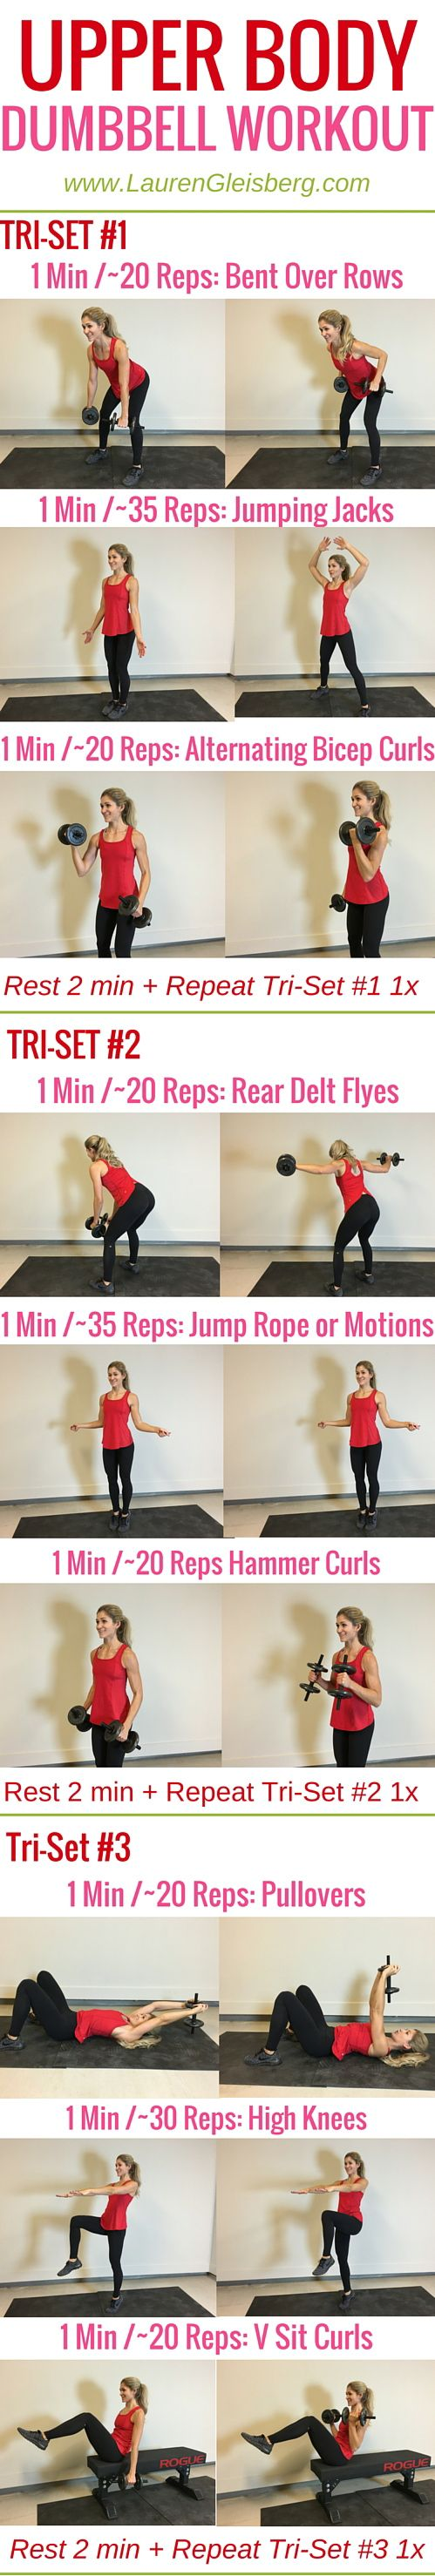 The secret to building sexier biceps for women and men Upper Body Dumbbell Workout | Weight Training Plans for Women www.LaurenGleisbe...